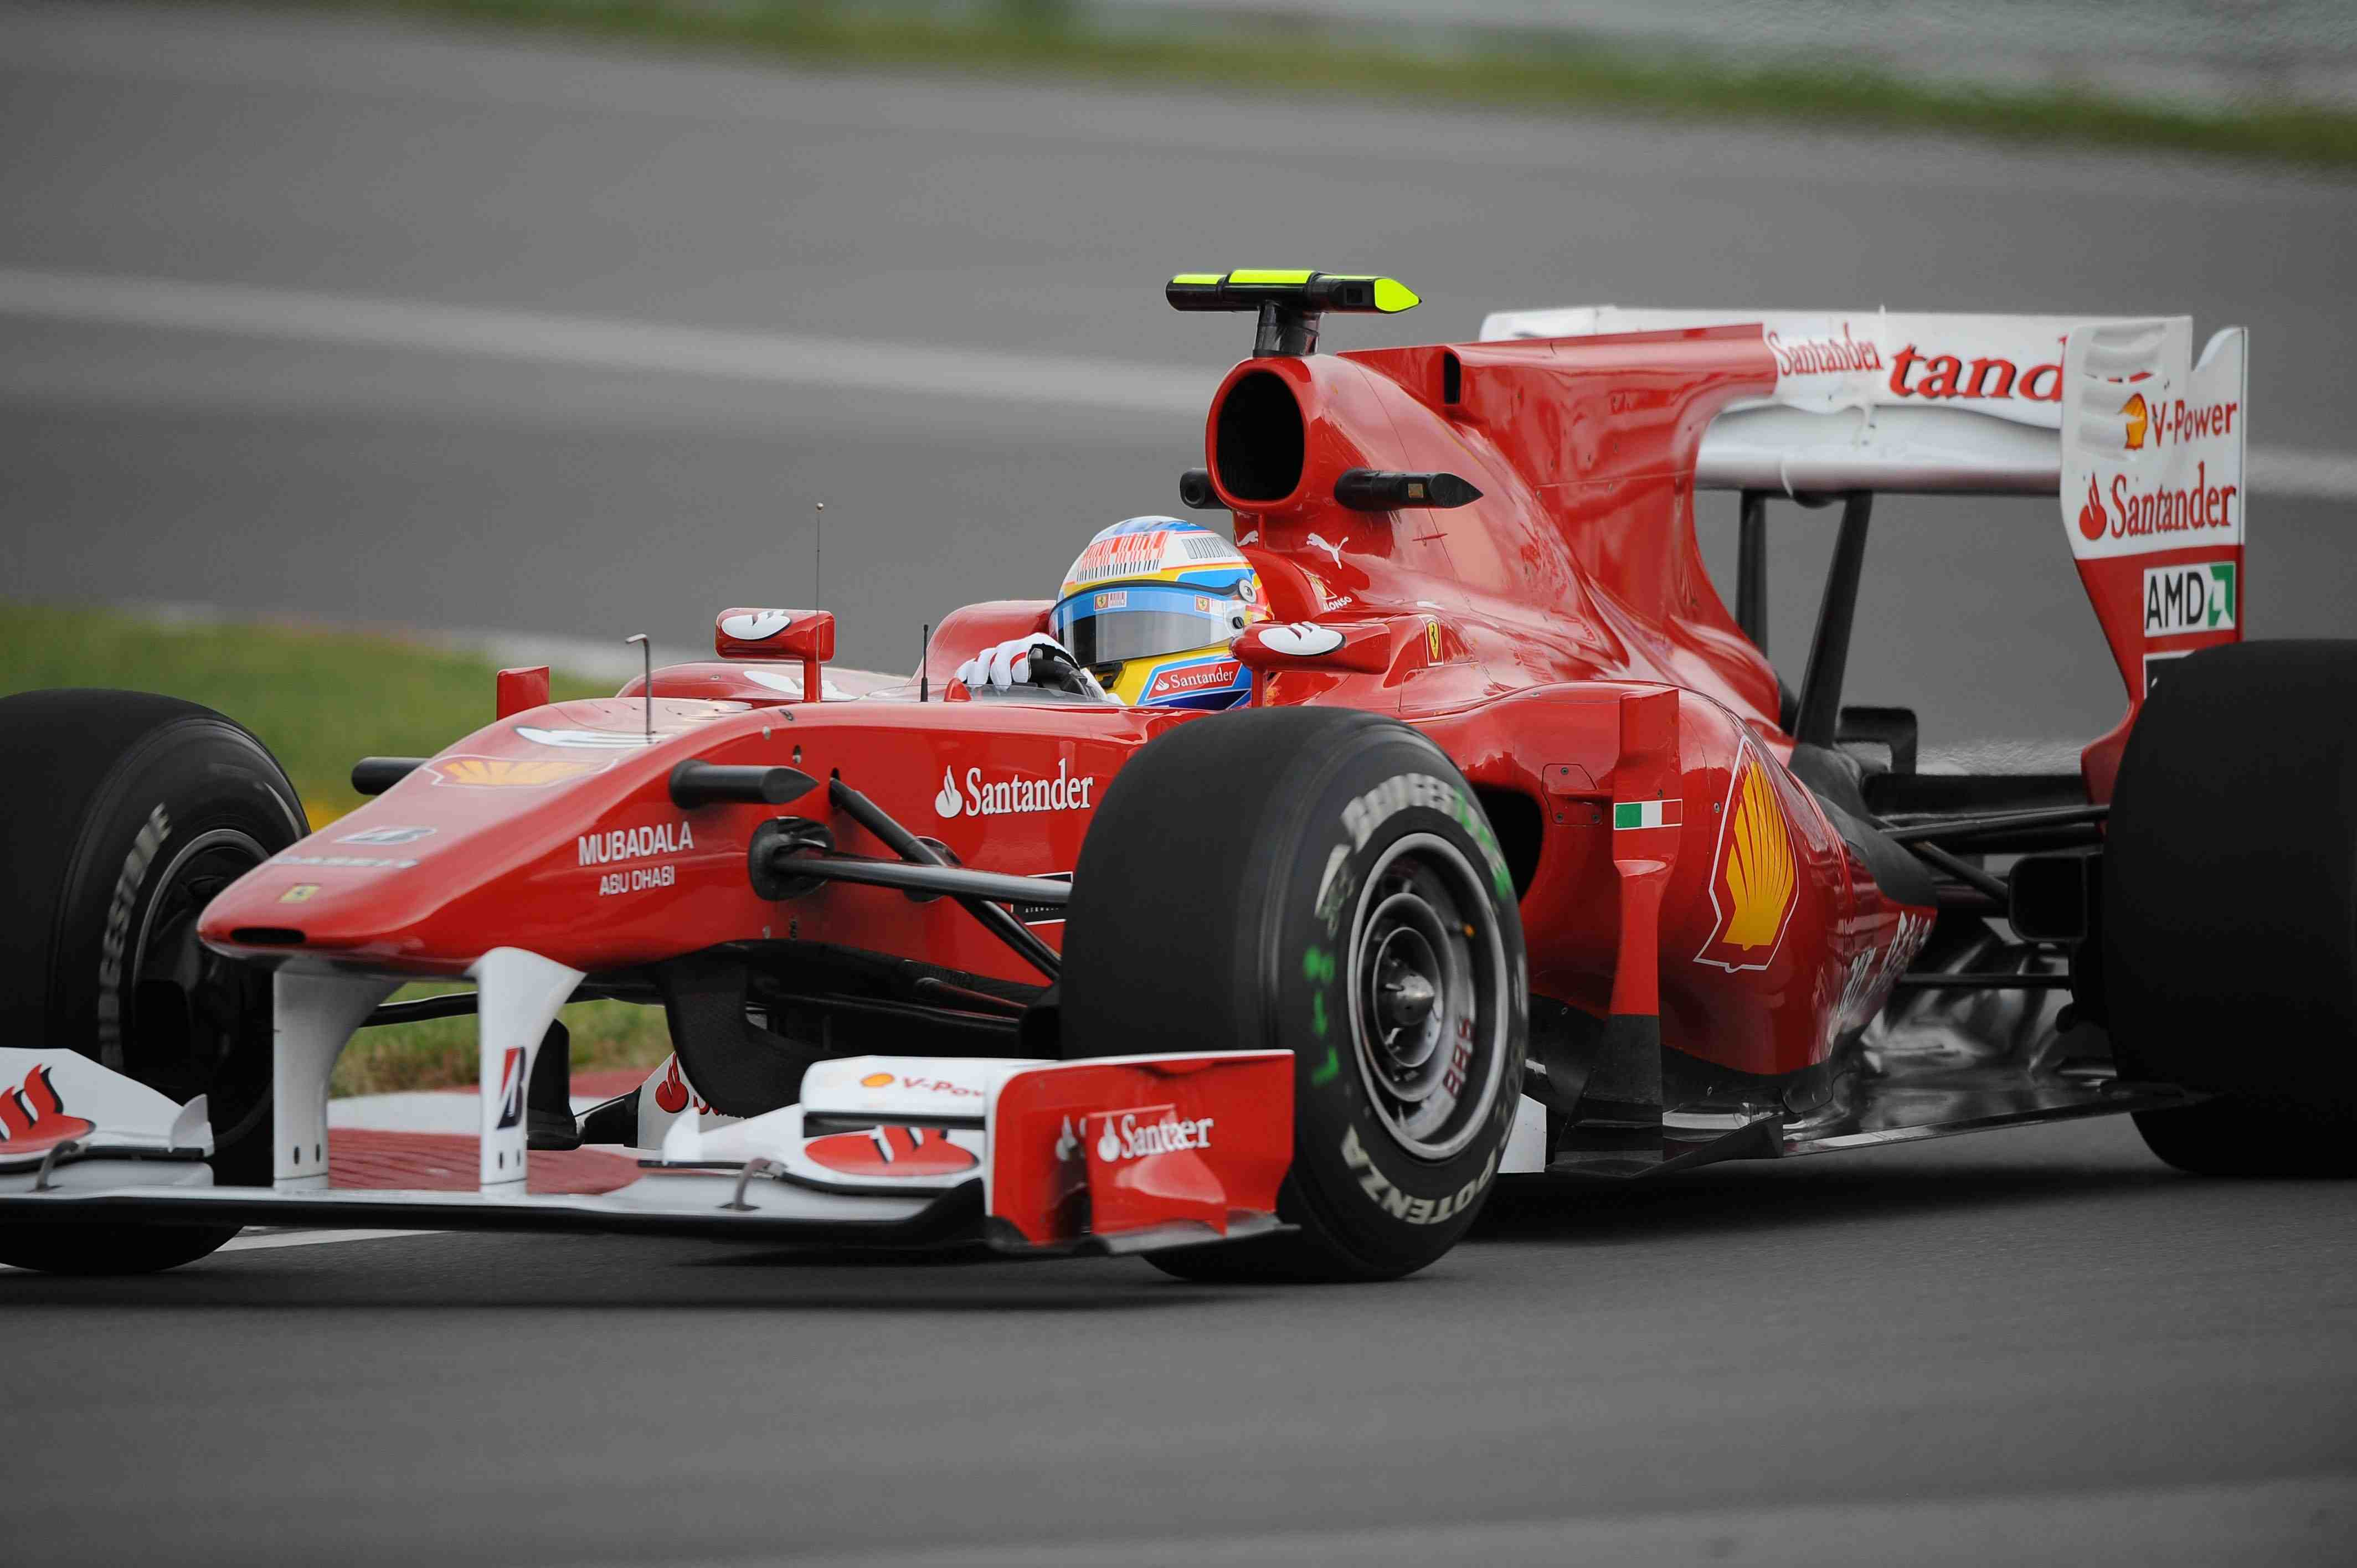 Alonso surprised by Montreal podium